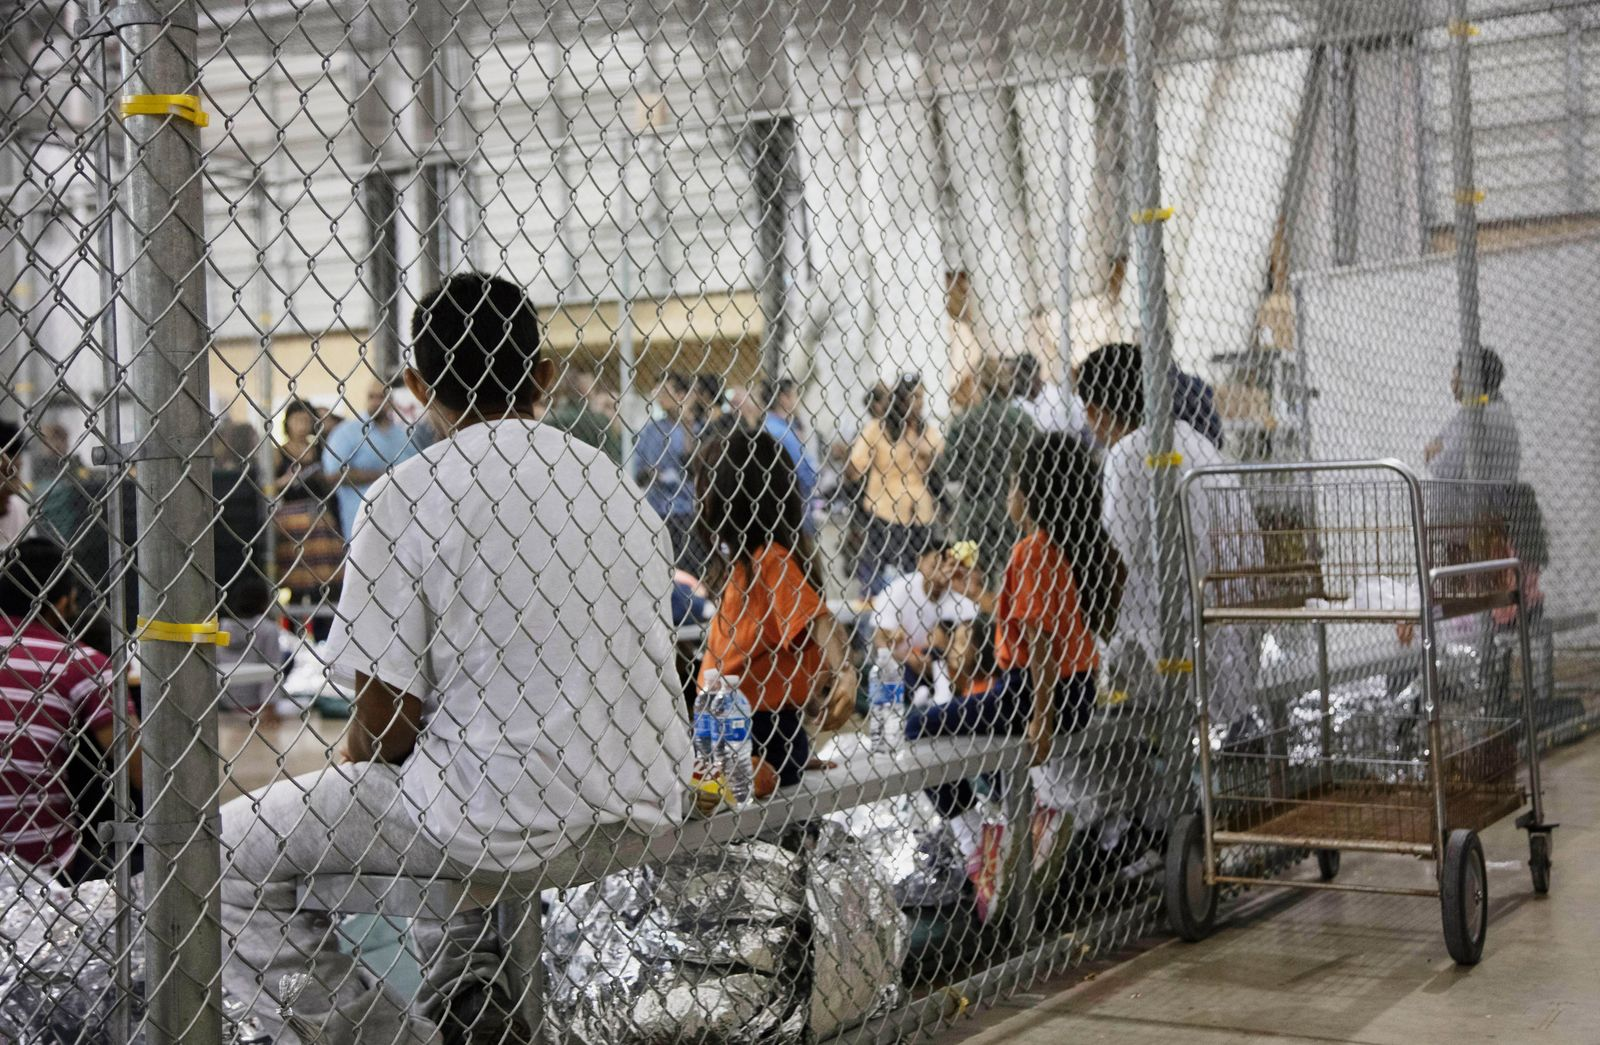 FILE - In this June 17, 2018, file photo, provided by U.S. Customs and Border Protection, people who have been taken into custody related to cases of illegal entry into the United States, sit in one of the cages at a facility in McAllen, Texas. Advocates were shocked to find an underage mom and her tiny, premature newborn daughter huddled in a Border Patrol facility this week in what they say was another example of the poor treatment immigrant families receive after crossing the border. The mother is a Guatemalan teen who crossed the border without a parent and was held at a facility in McAllen, Texas. (U.S. Customs and Border Protection's Rio Grande Valley Sector via AP, File)